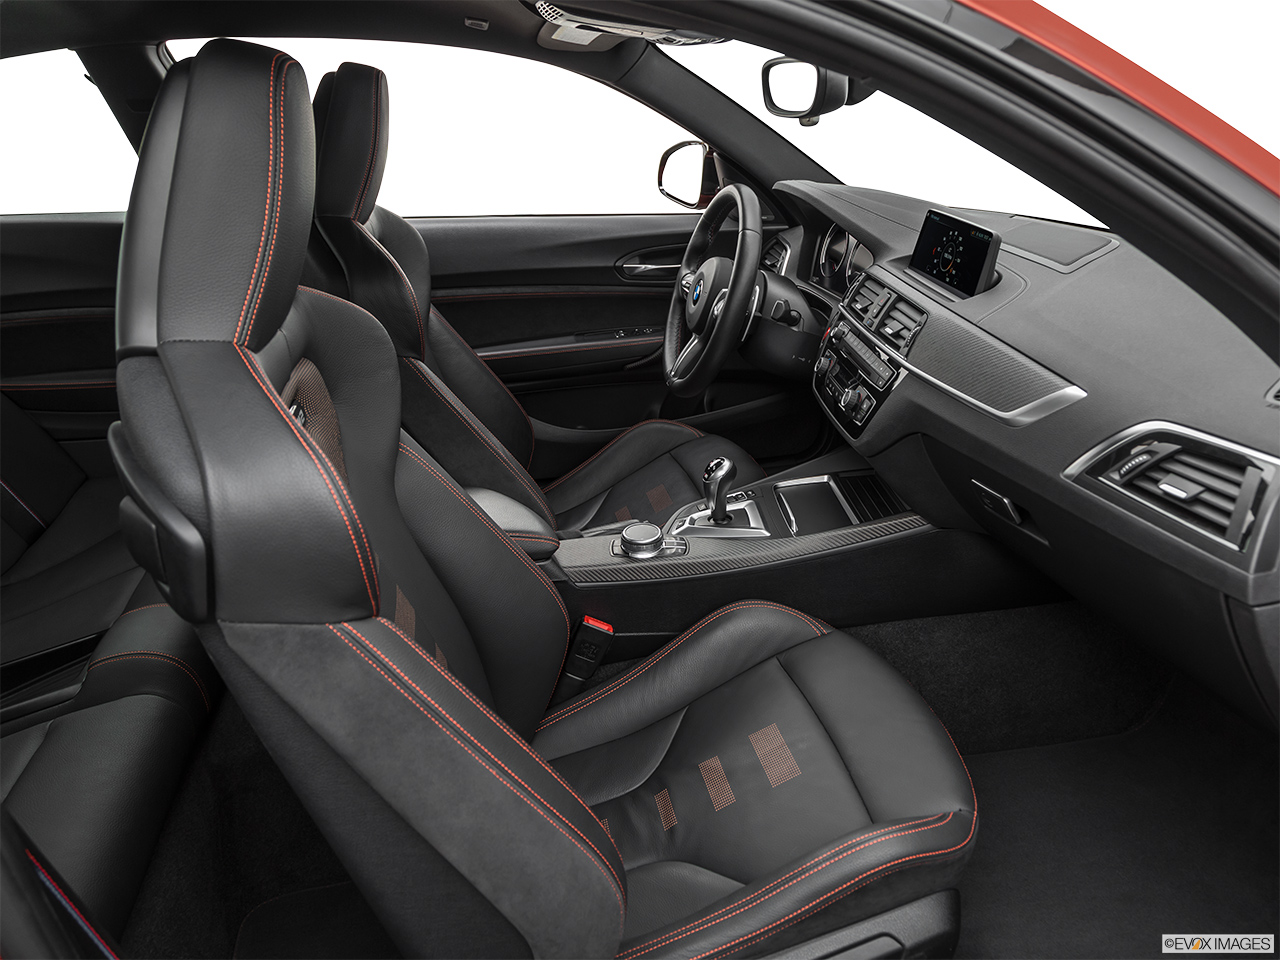 2020 BMW M2 Competition Passenger seat.